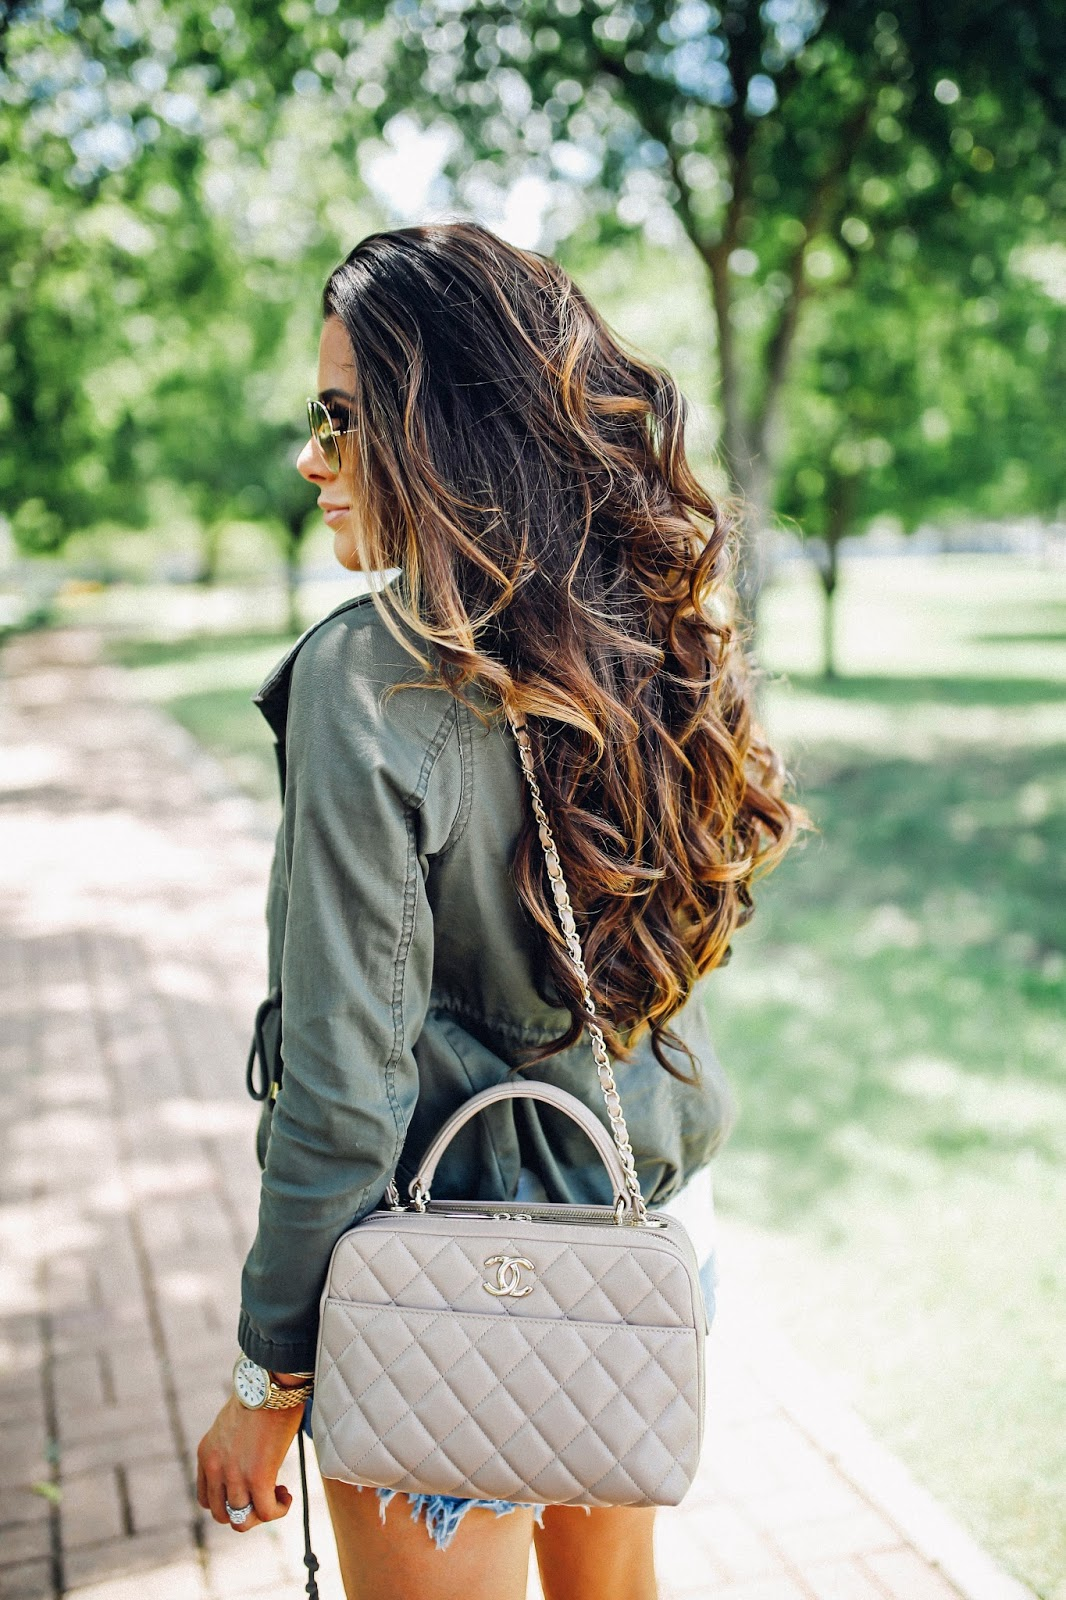 emily gemma, the sweetest thing blog, emily gemma hair, brunette balayage, hair painting, emilyanngemma instagram, chanel bowling bag in beige 2016, green military jacket outfit idea, fall outfit ideas jean shorts with booties, pinterest fall outfit idea, pinterest fall fashion, green utility jacket outfit idea, brunette hair color for fall, balayage for fall, long layer medium haircut, dallas fashion blog, tulsa fashion blogger, one teaspoon shorts, vince camuto feina booties, booties with shorts outfits, how to style booties with shorts and dresses